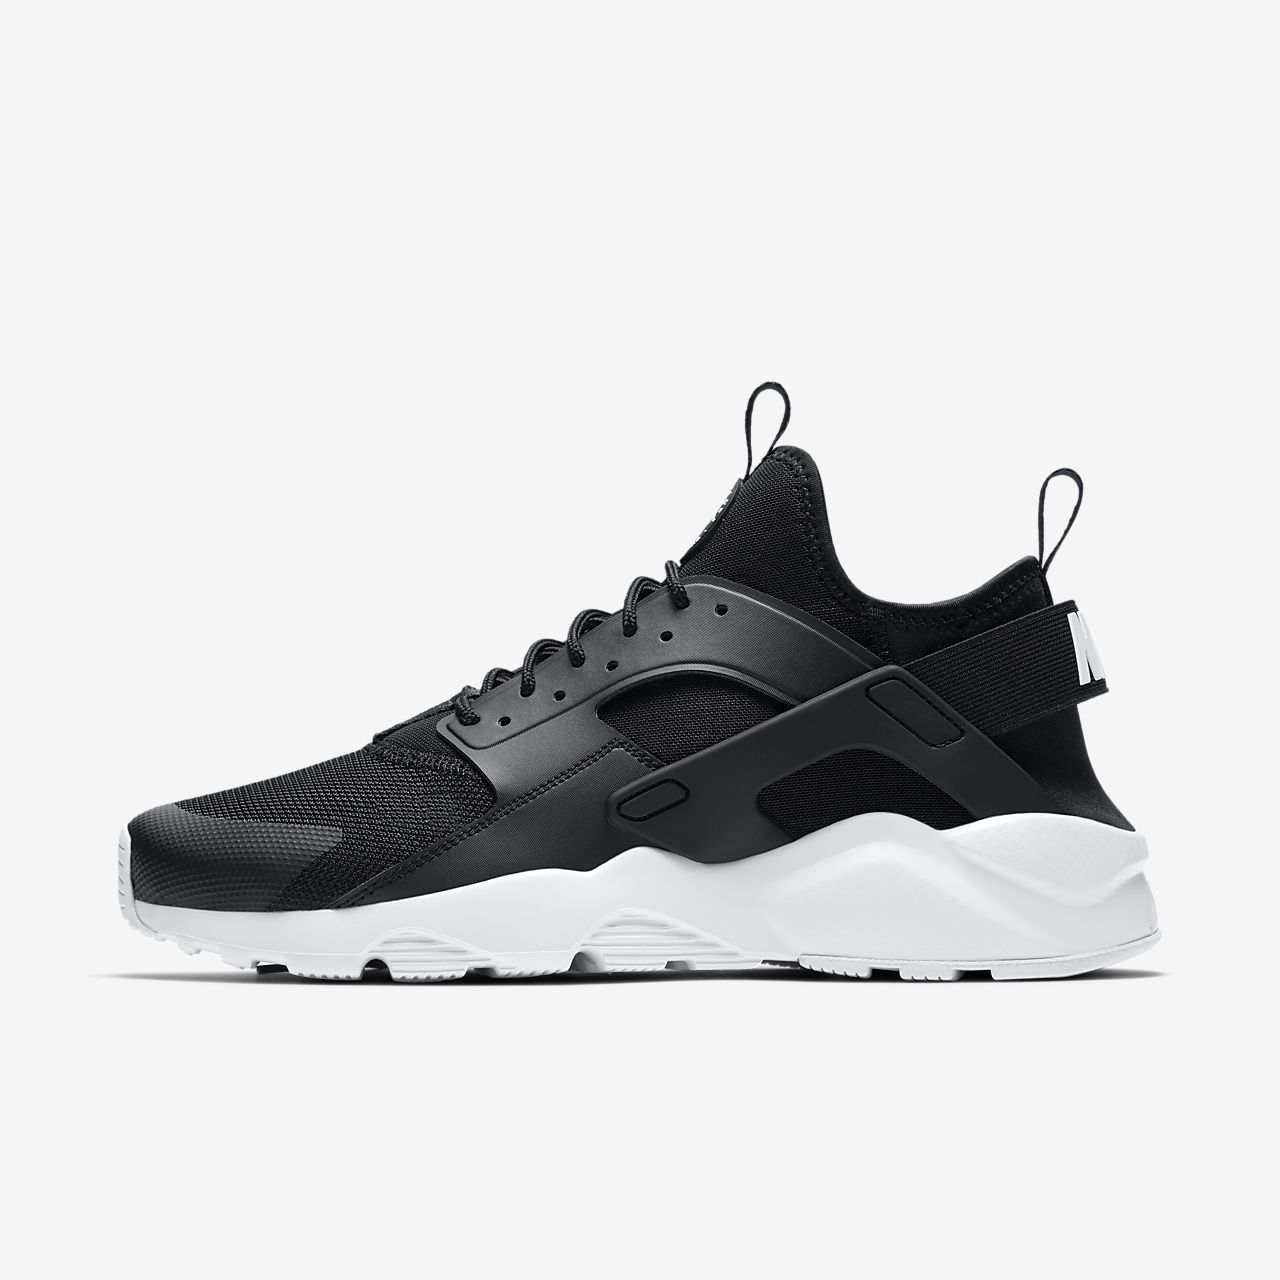 5d050d6ba8fd Nike Air Huarache Ultra Men s Shoe. Nike.com GB